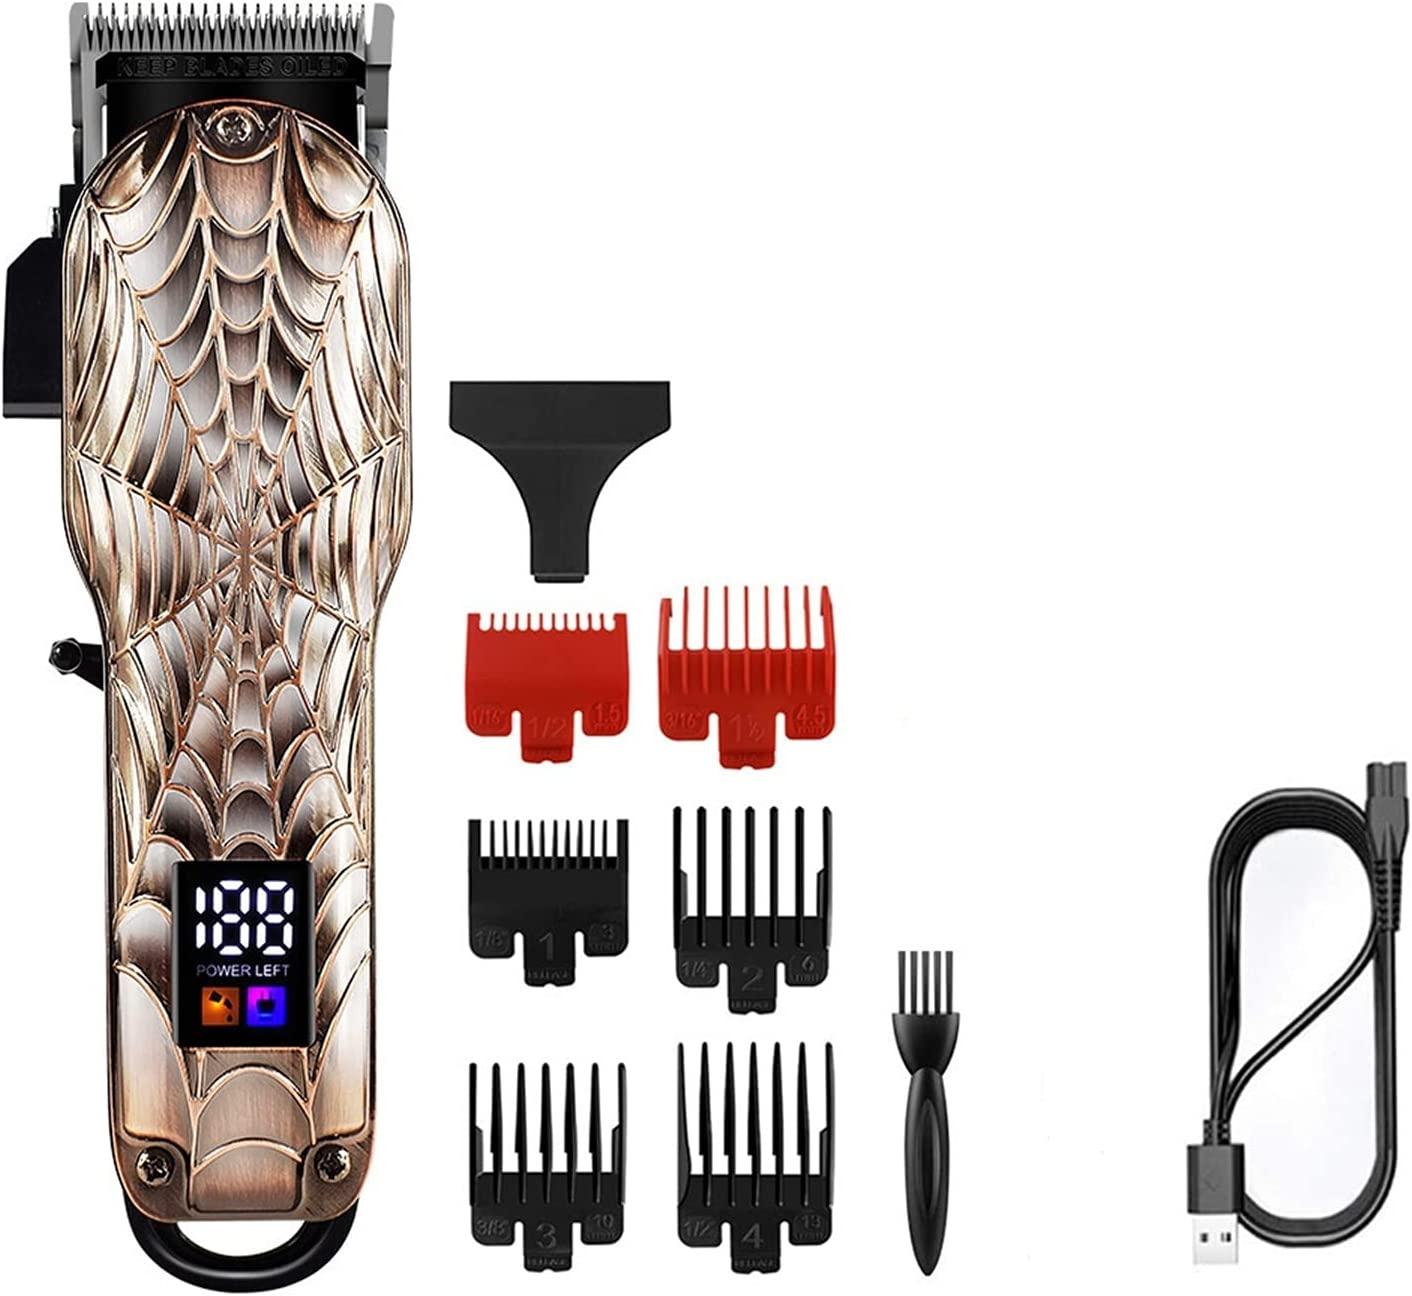 Wuleldsd Direct store Hair Clippers Professional Max 86% OFF Electric Mm Clipper B 0